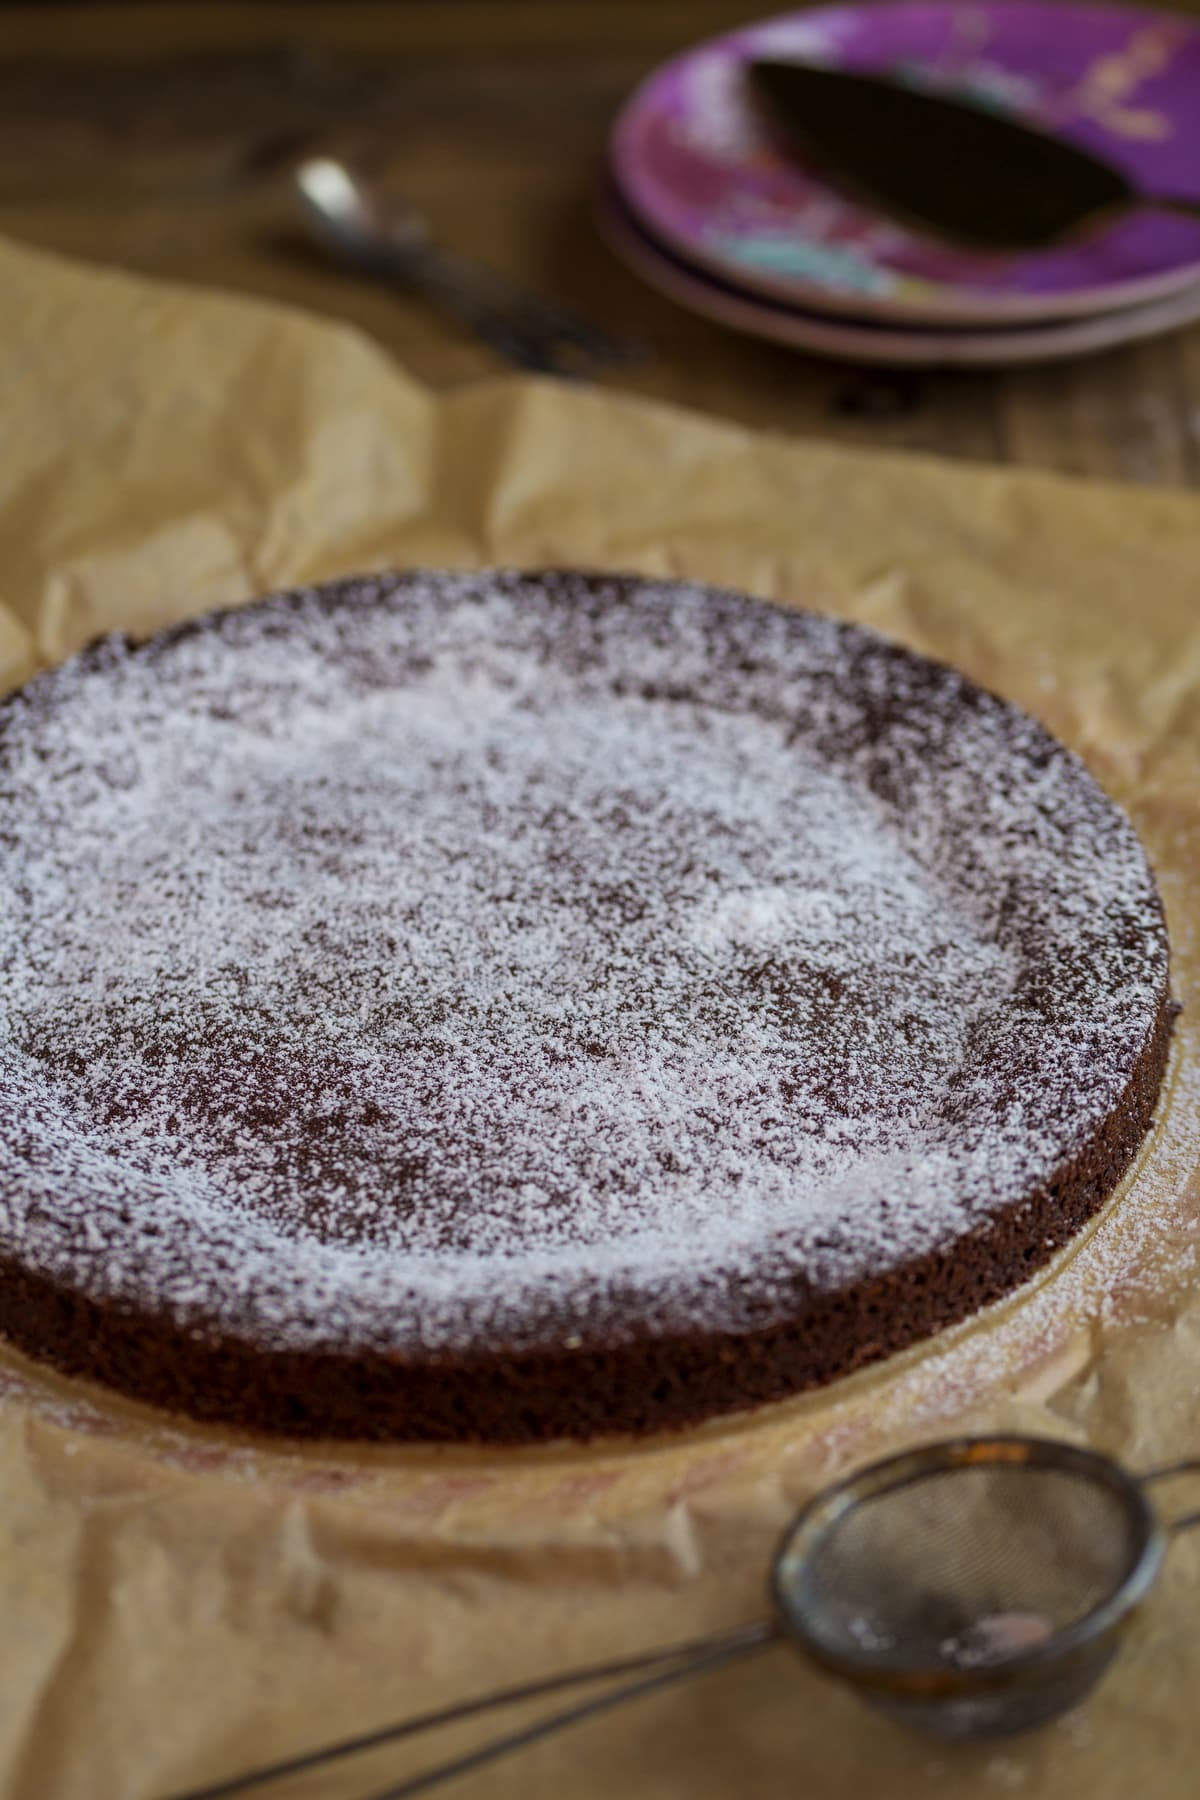 Chocolate cake dusted with confectioner's sugar.